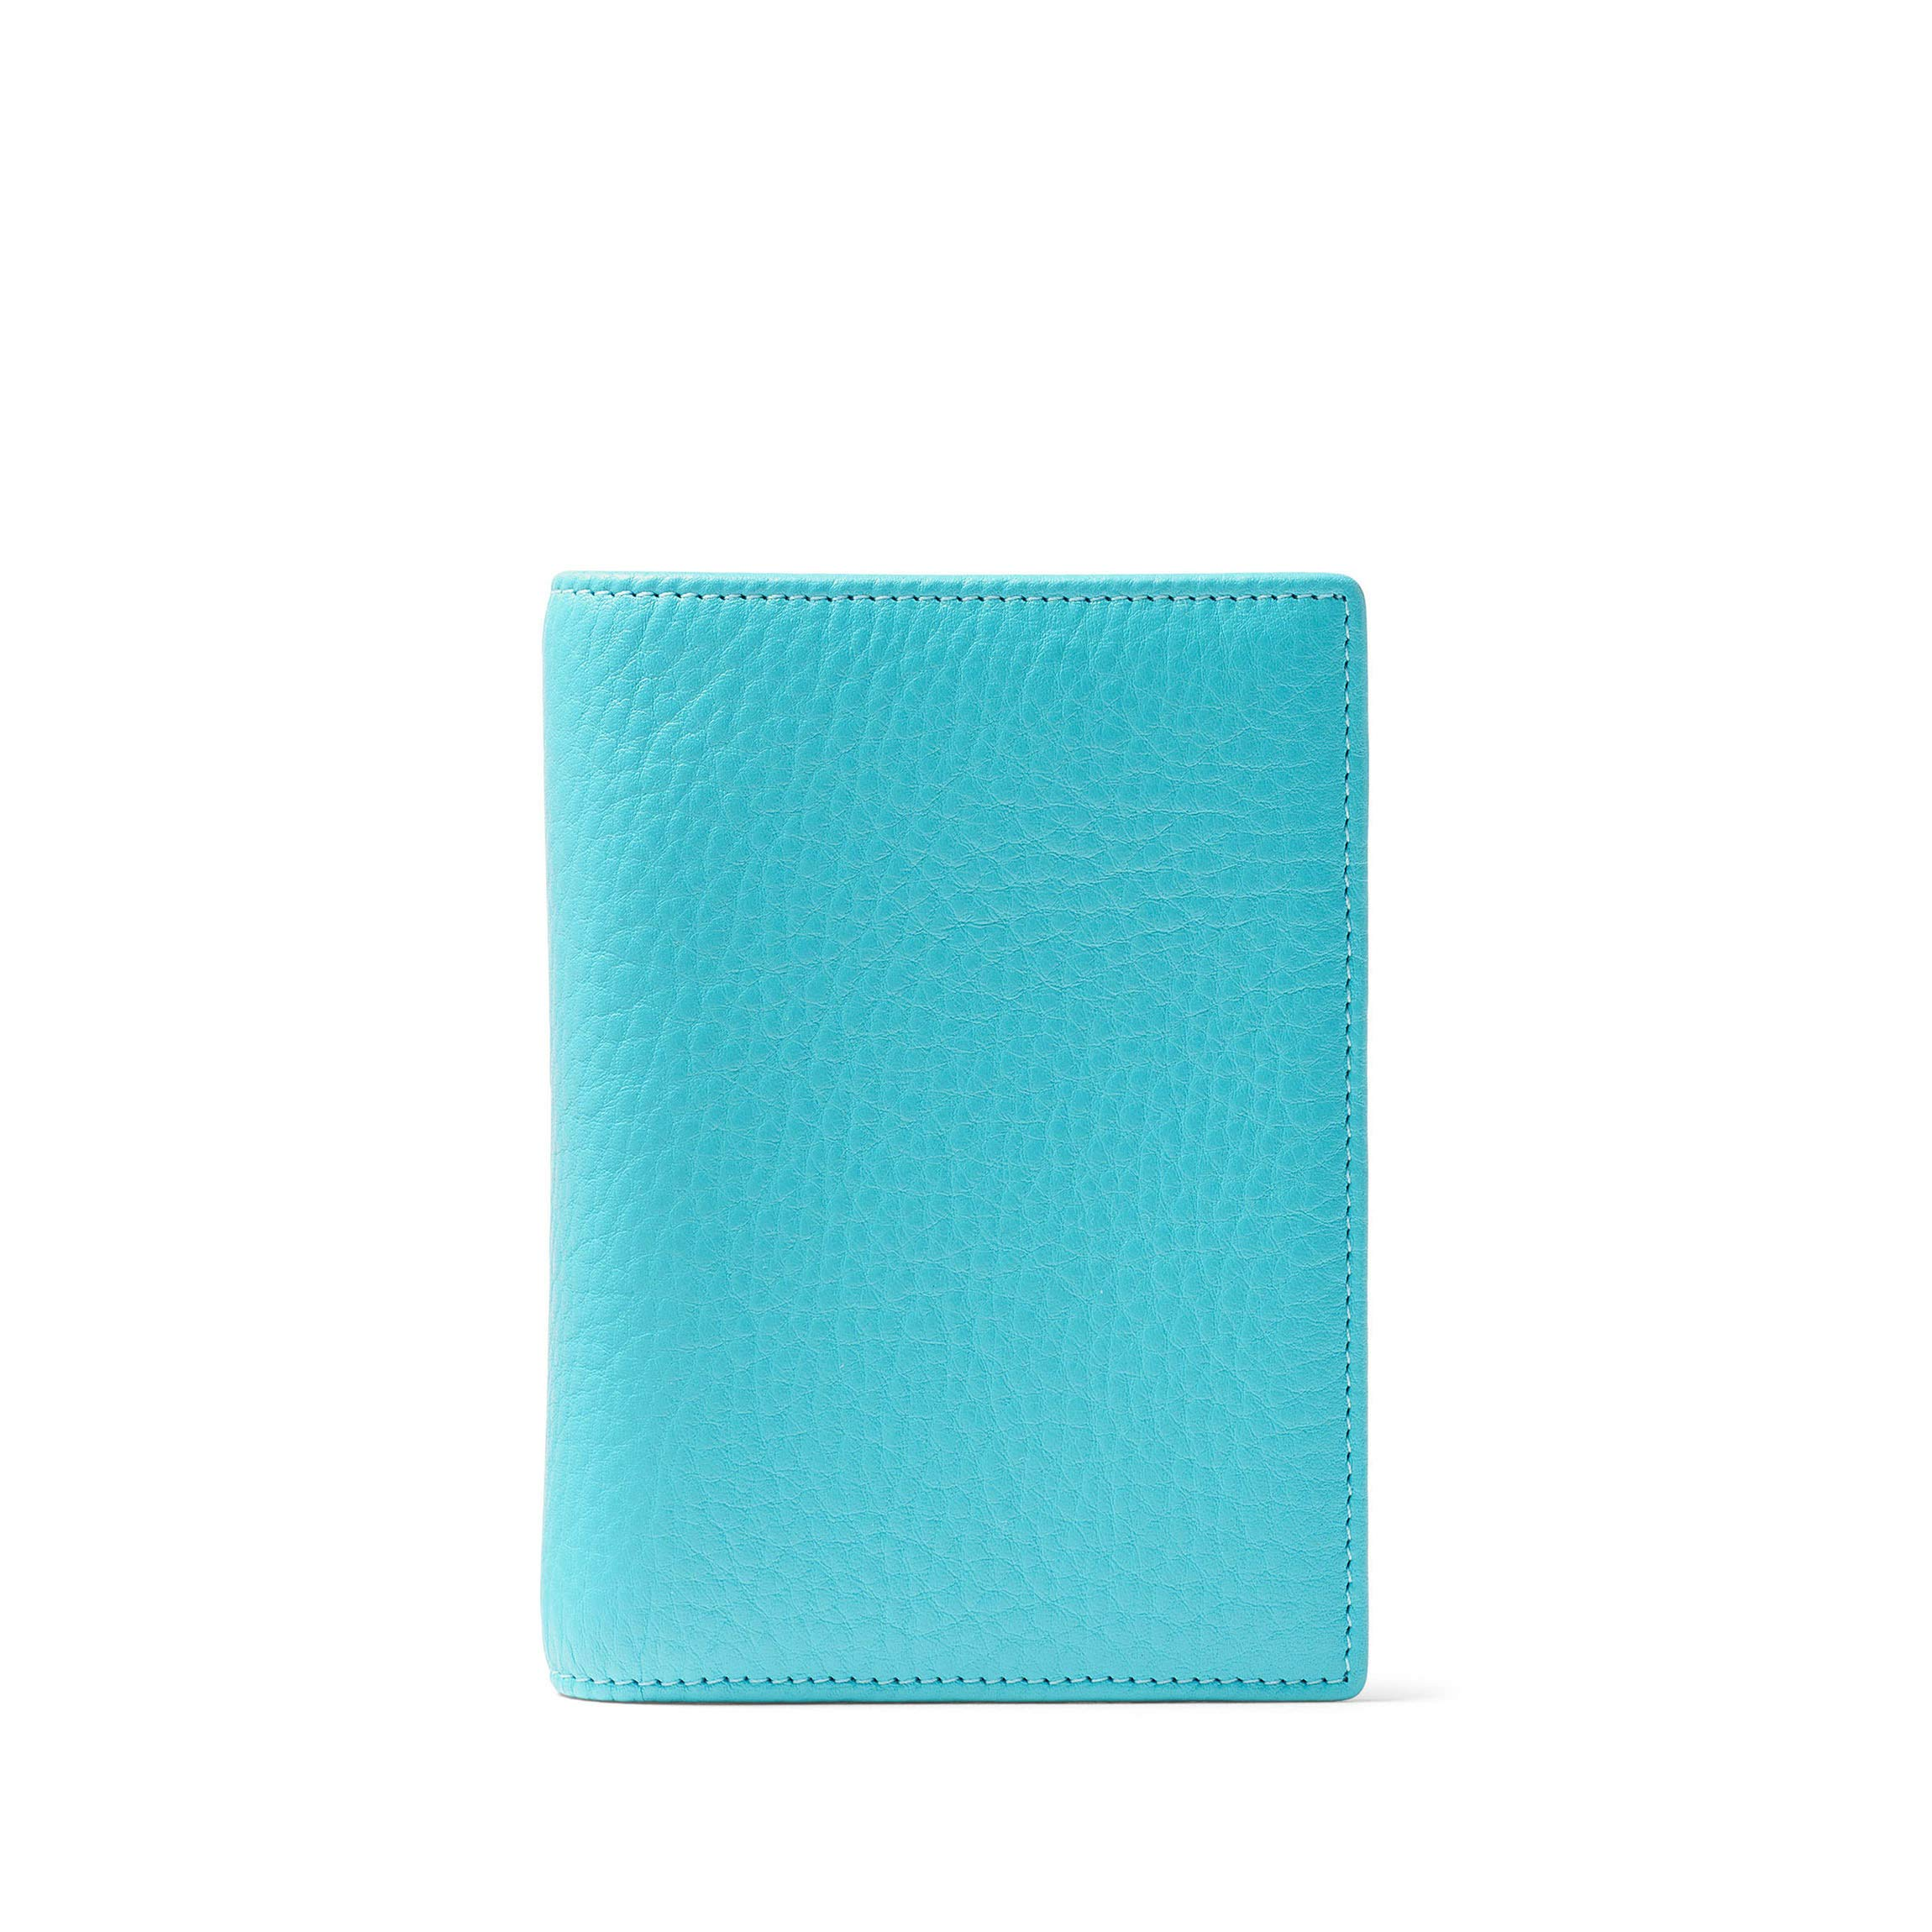 Deluxe Passport Cover - Full Grain Leather - Teal (blue)